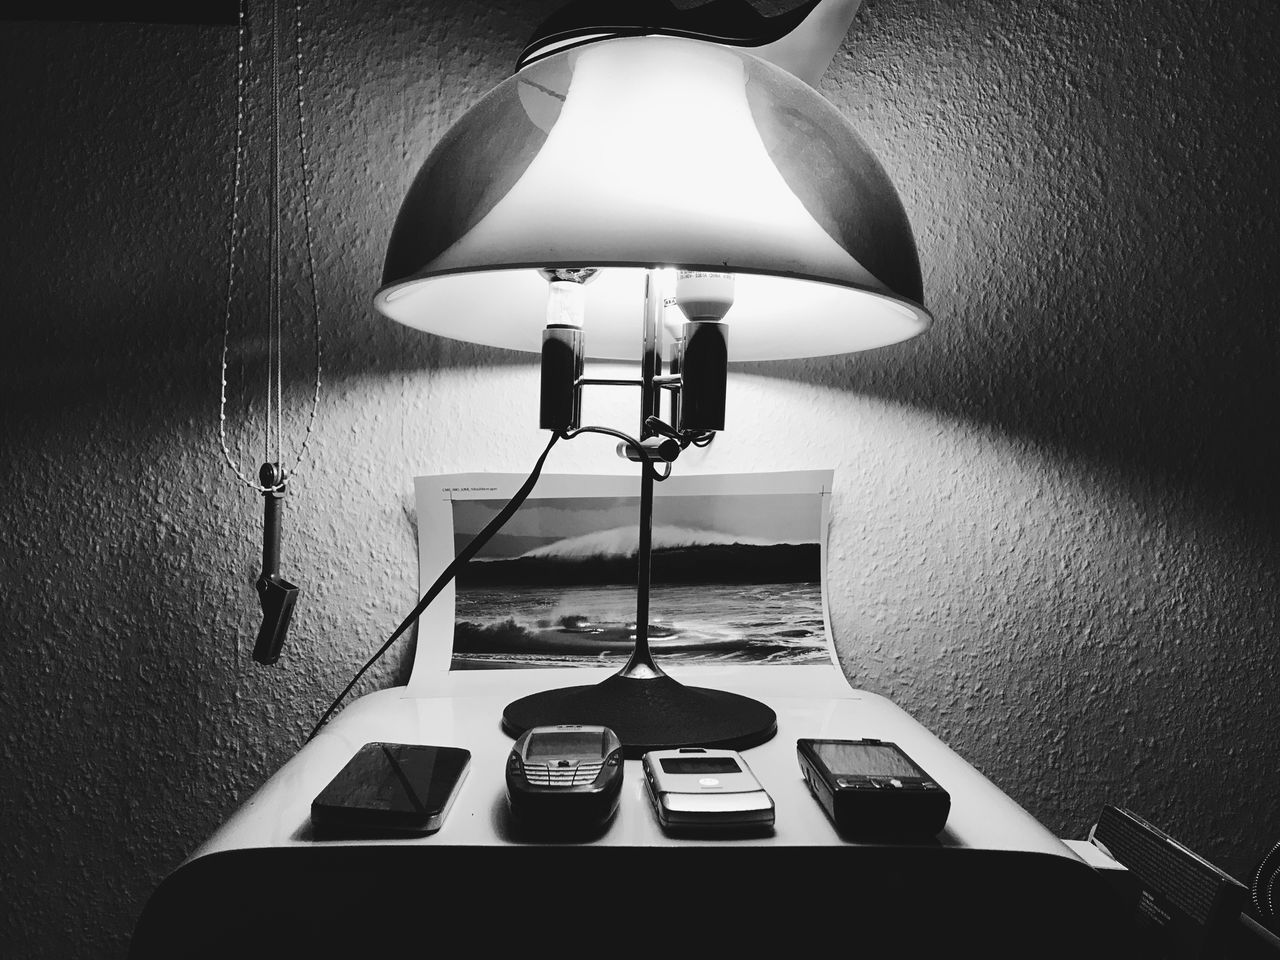 lighting equipment, electric lamp, indoors, illuminated, lamp shade, no people, electricity, table, hanging, home interior, light bulb, built structure, technology, architecture, day